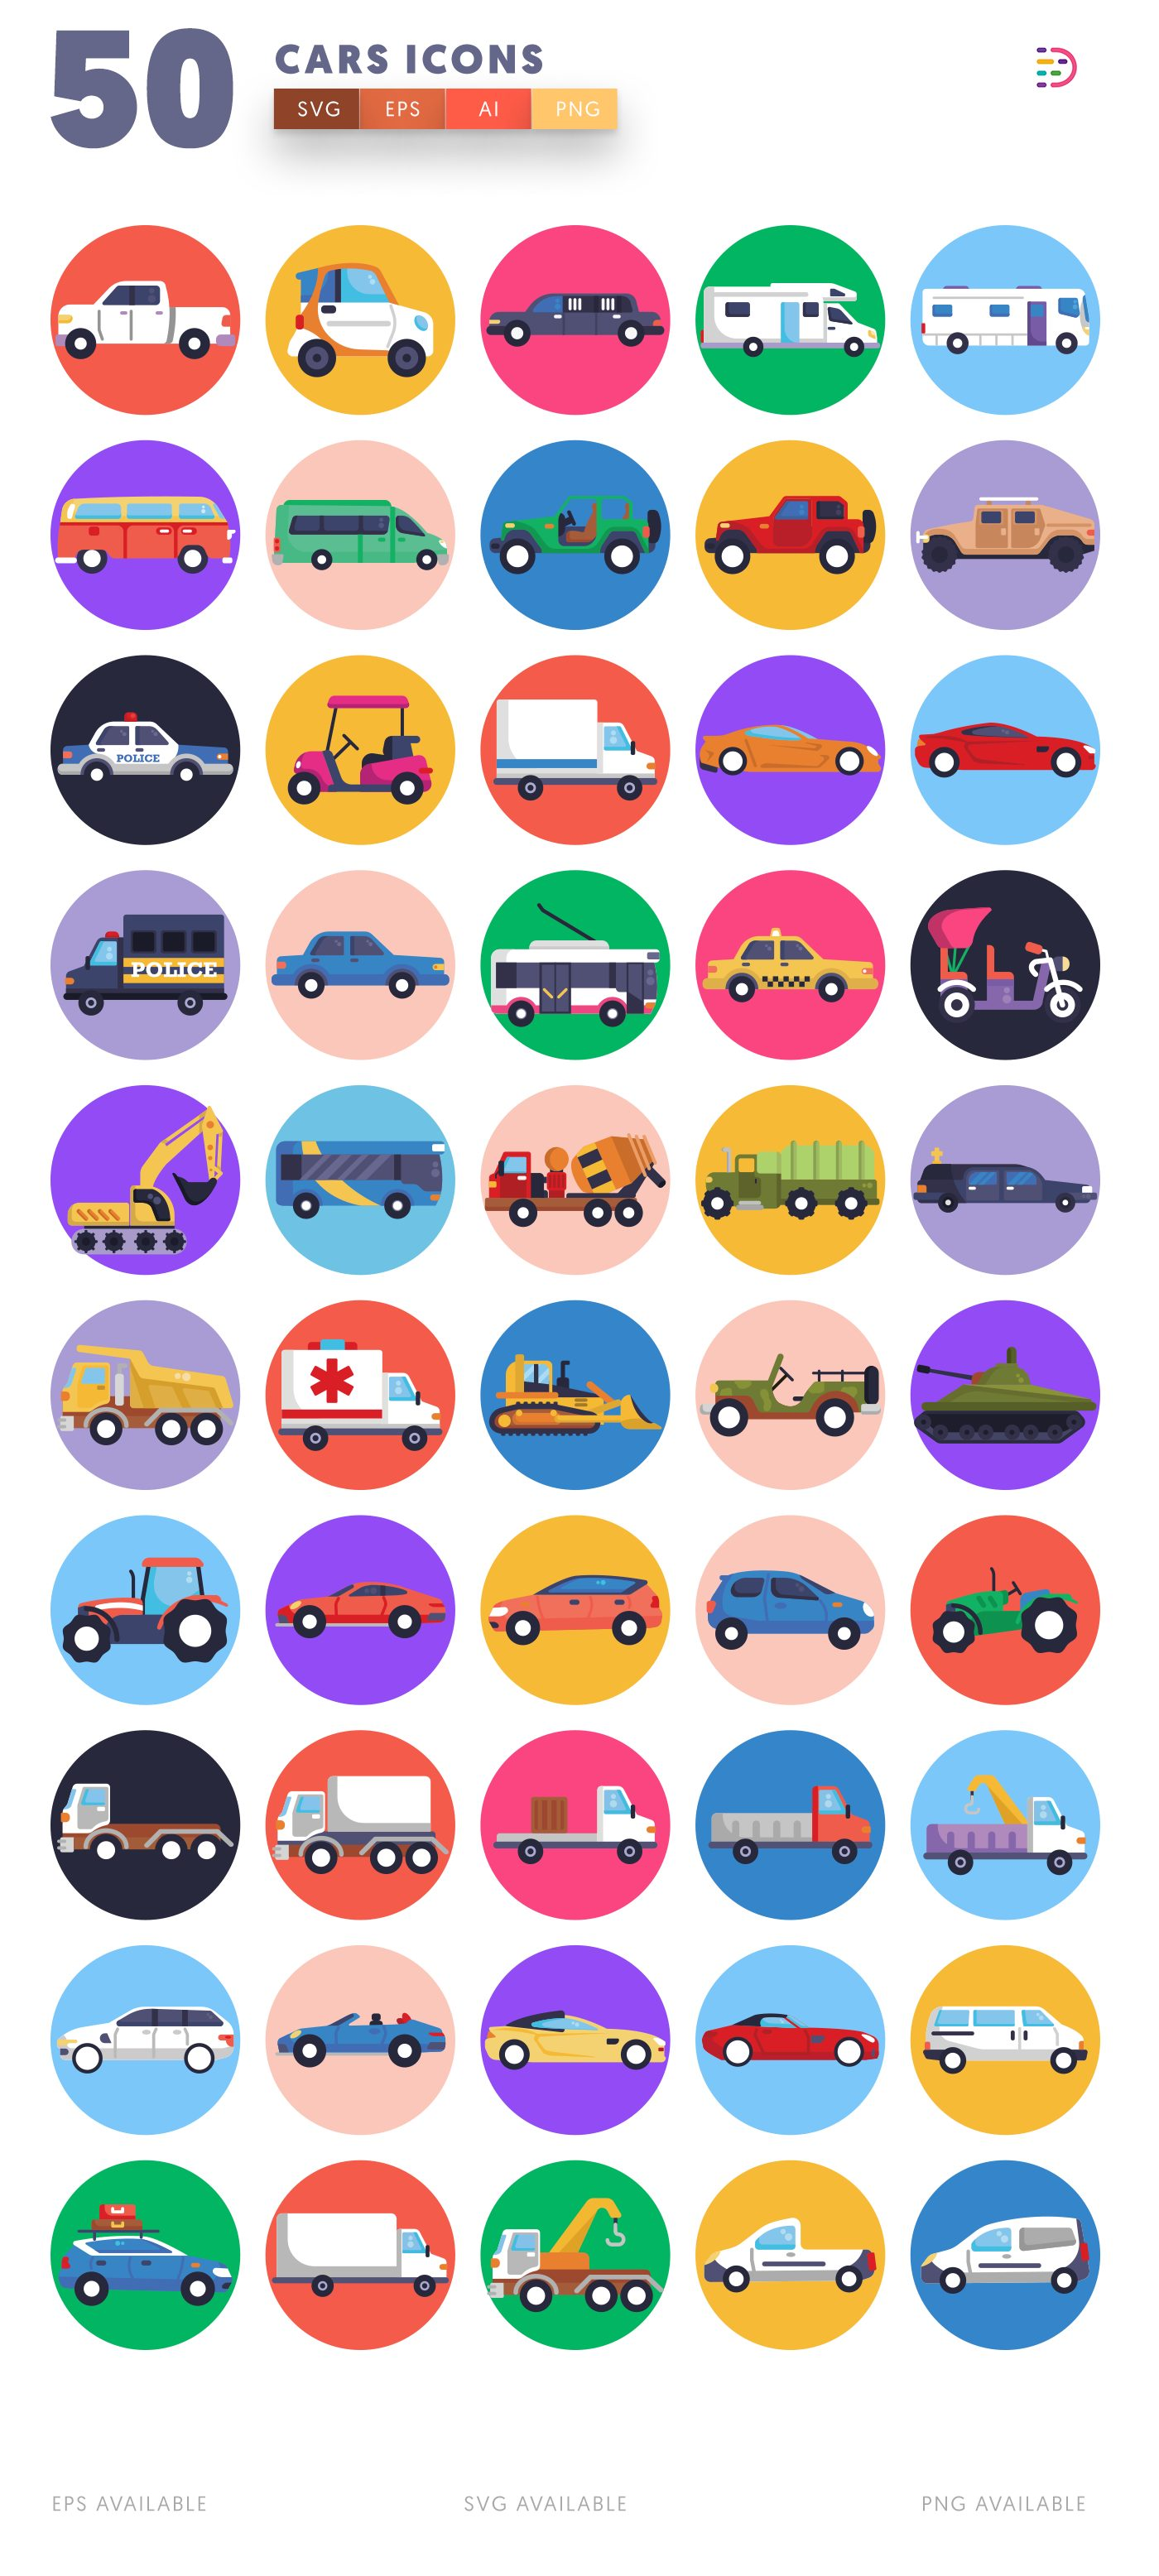 Cars icon pack